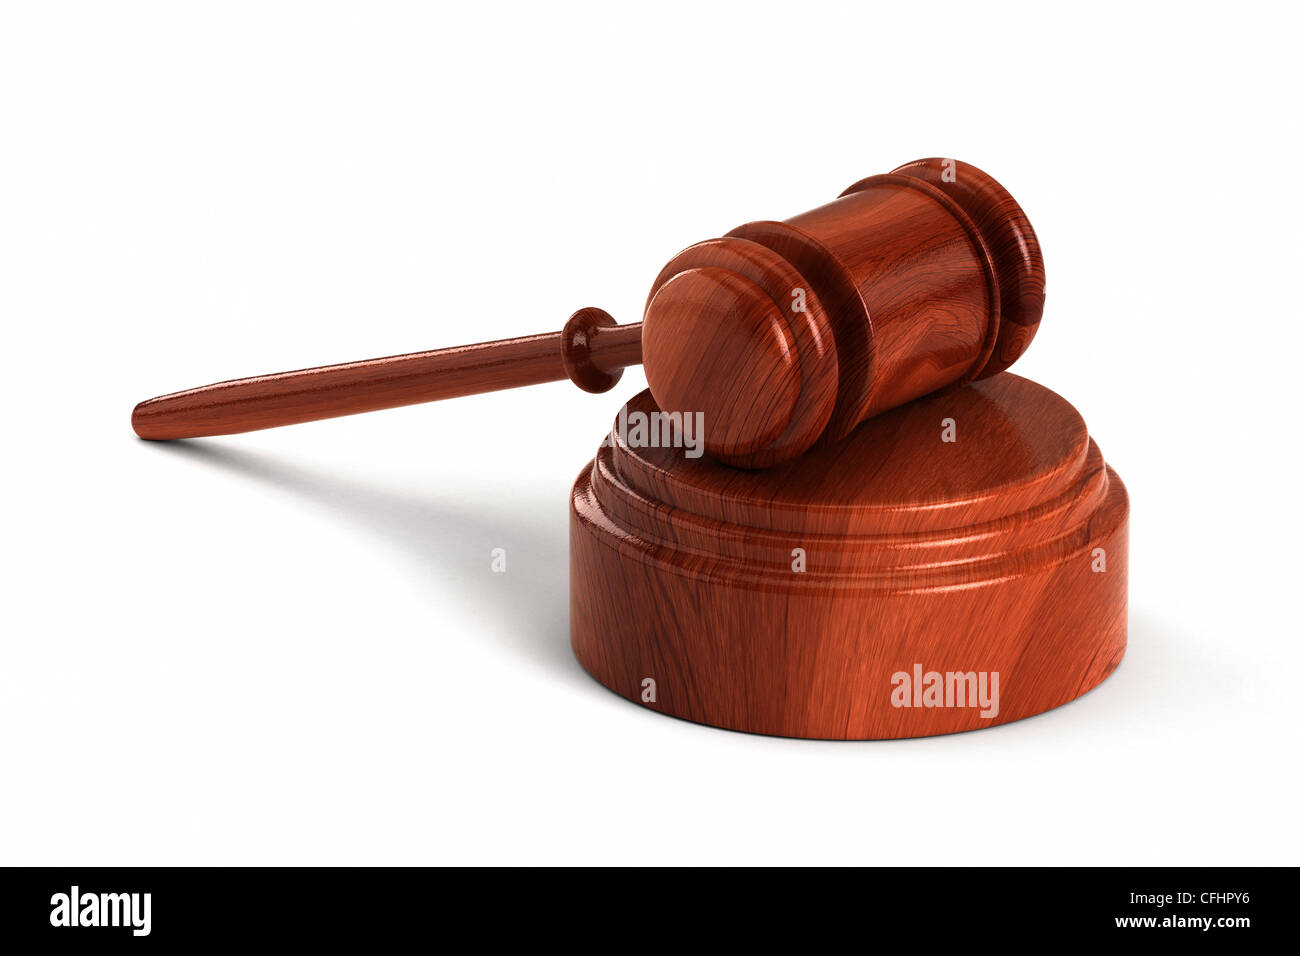 Wooden gavel with sound block - Stock Image